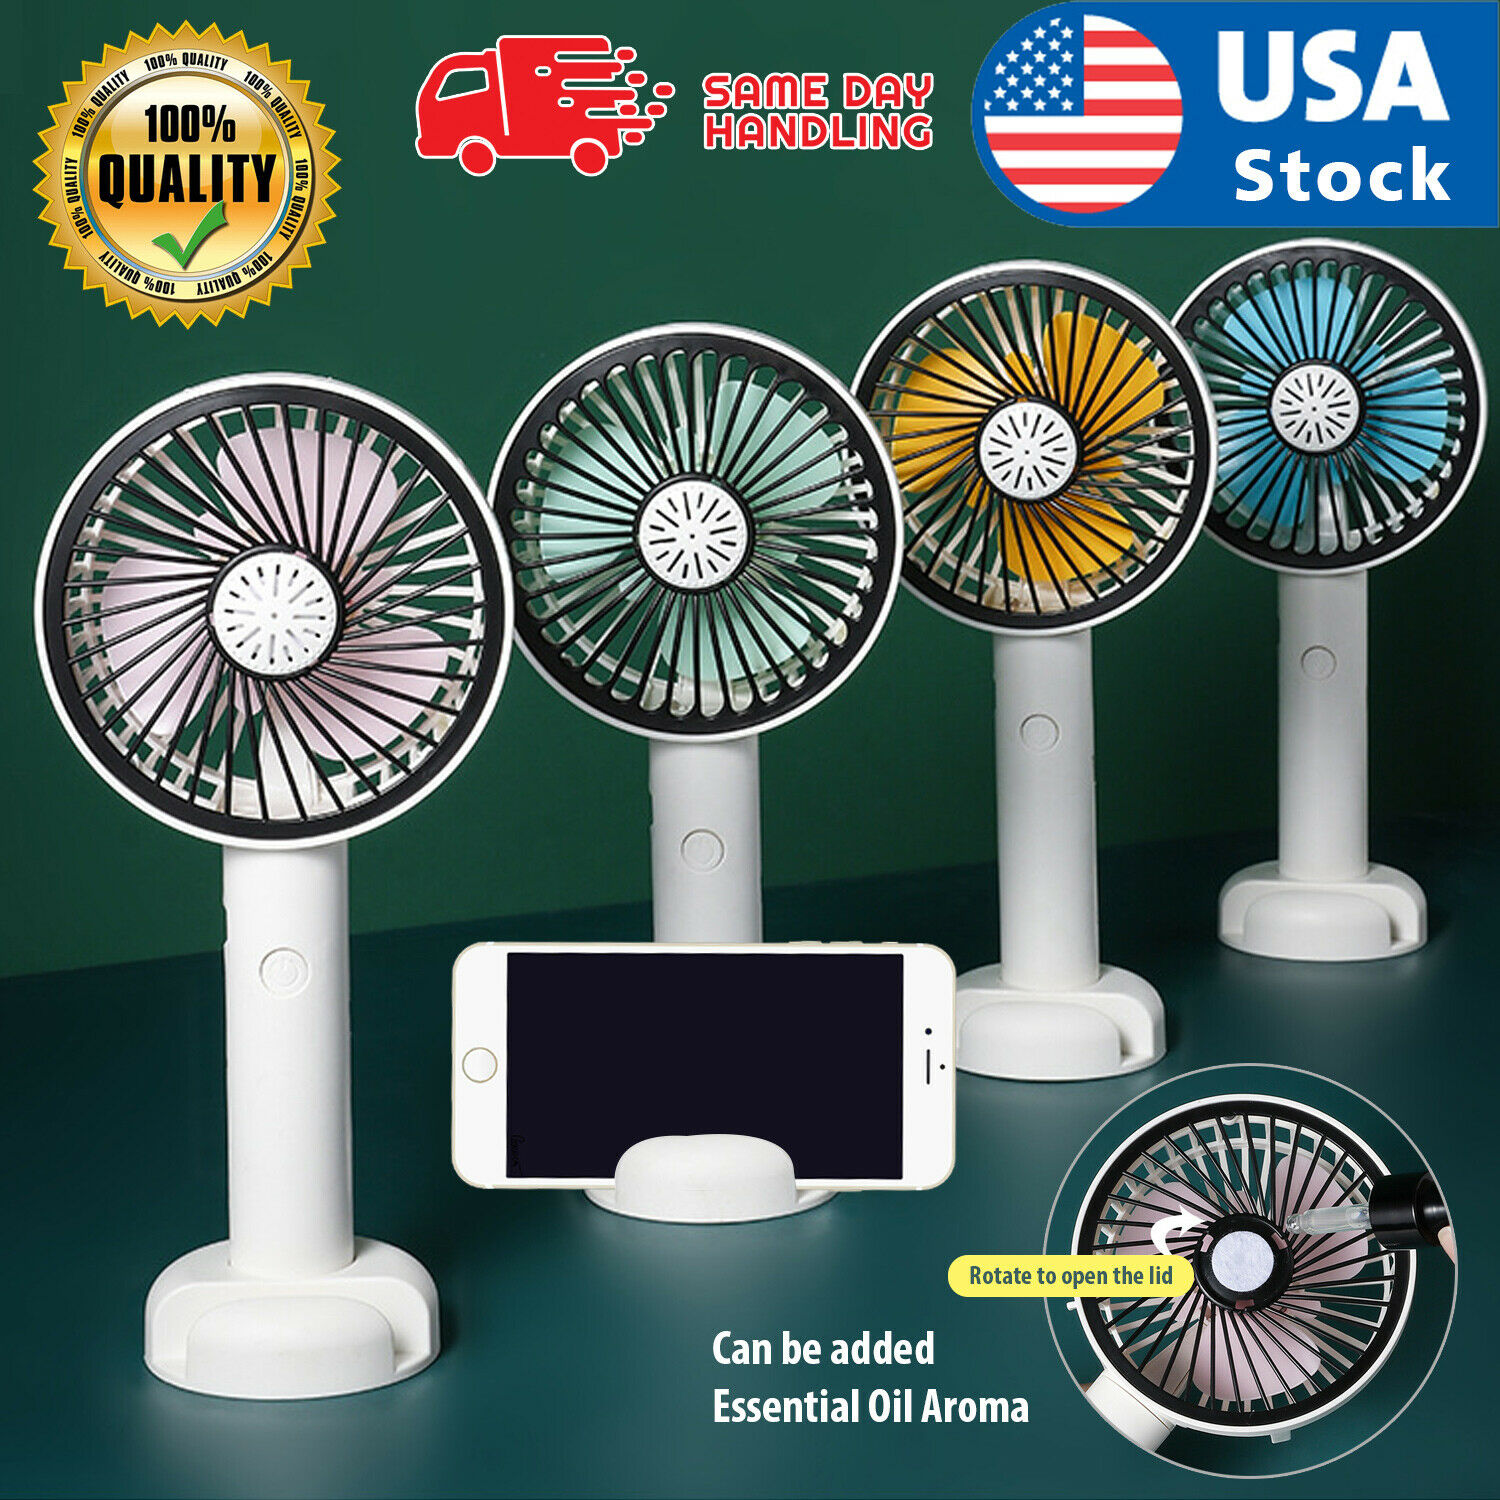 Portable Rechargeable Fan Mini Handy Fan Pocket Size Air Cooler USB w/ Battery Heating, Cooling & Air